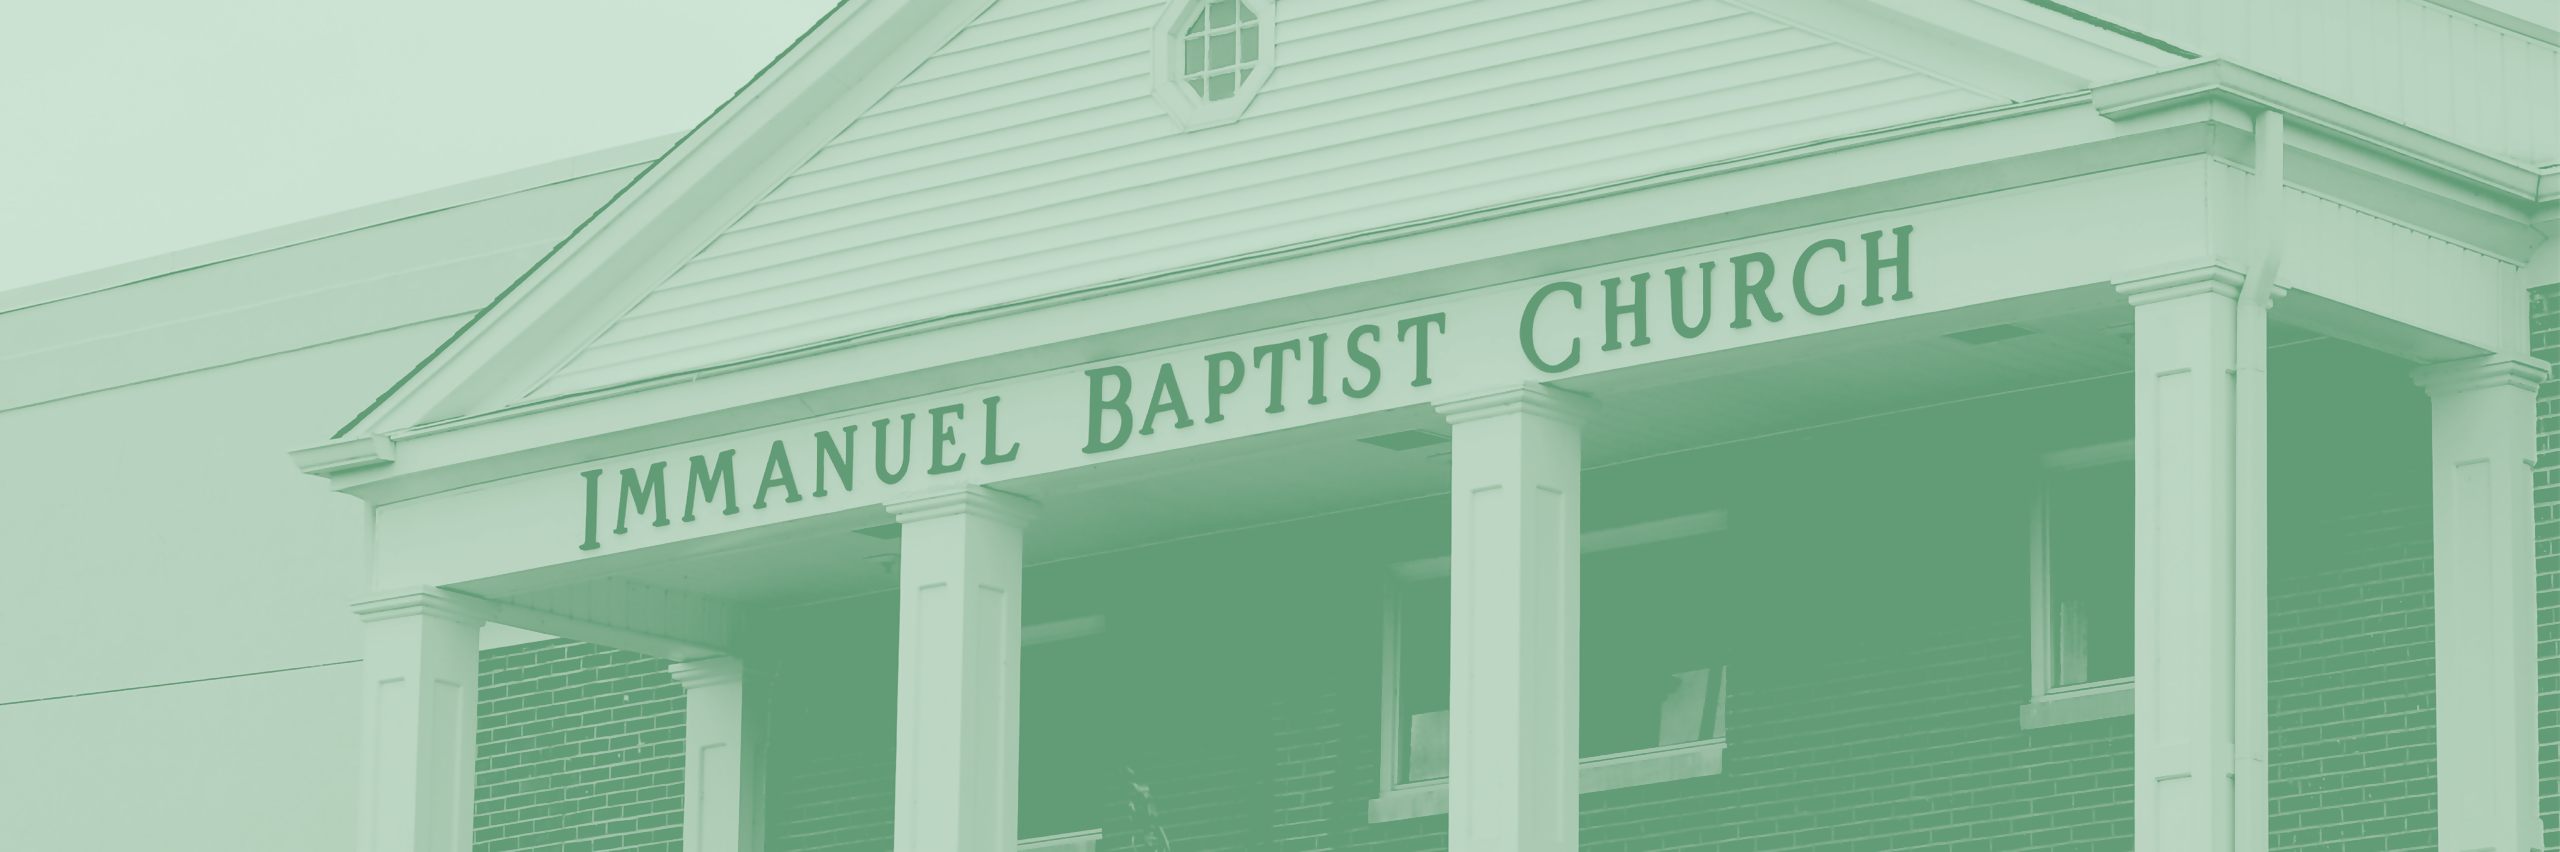 Immanuel Baptist Church |  Lebanon, TN